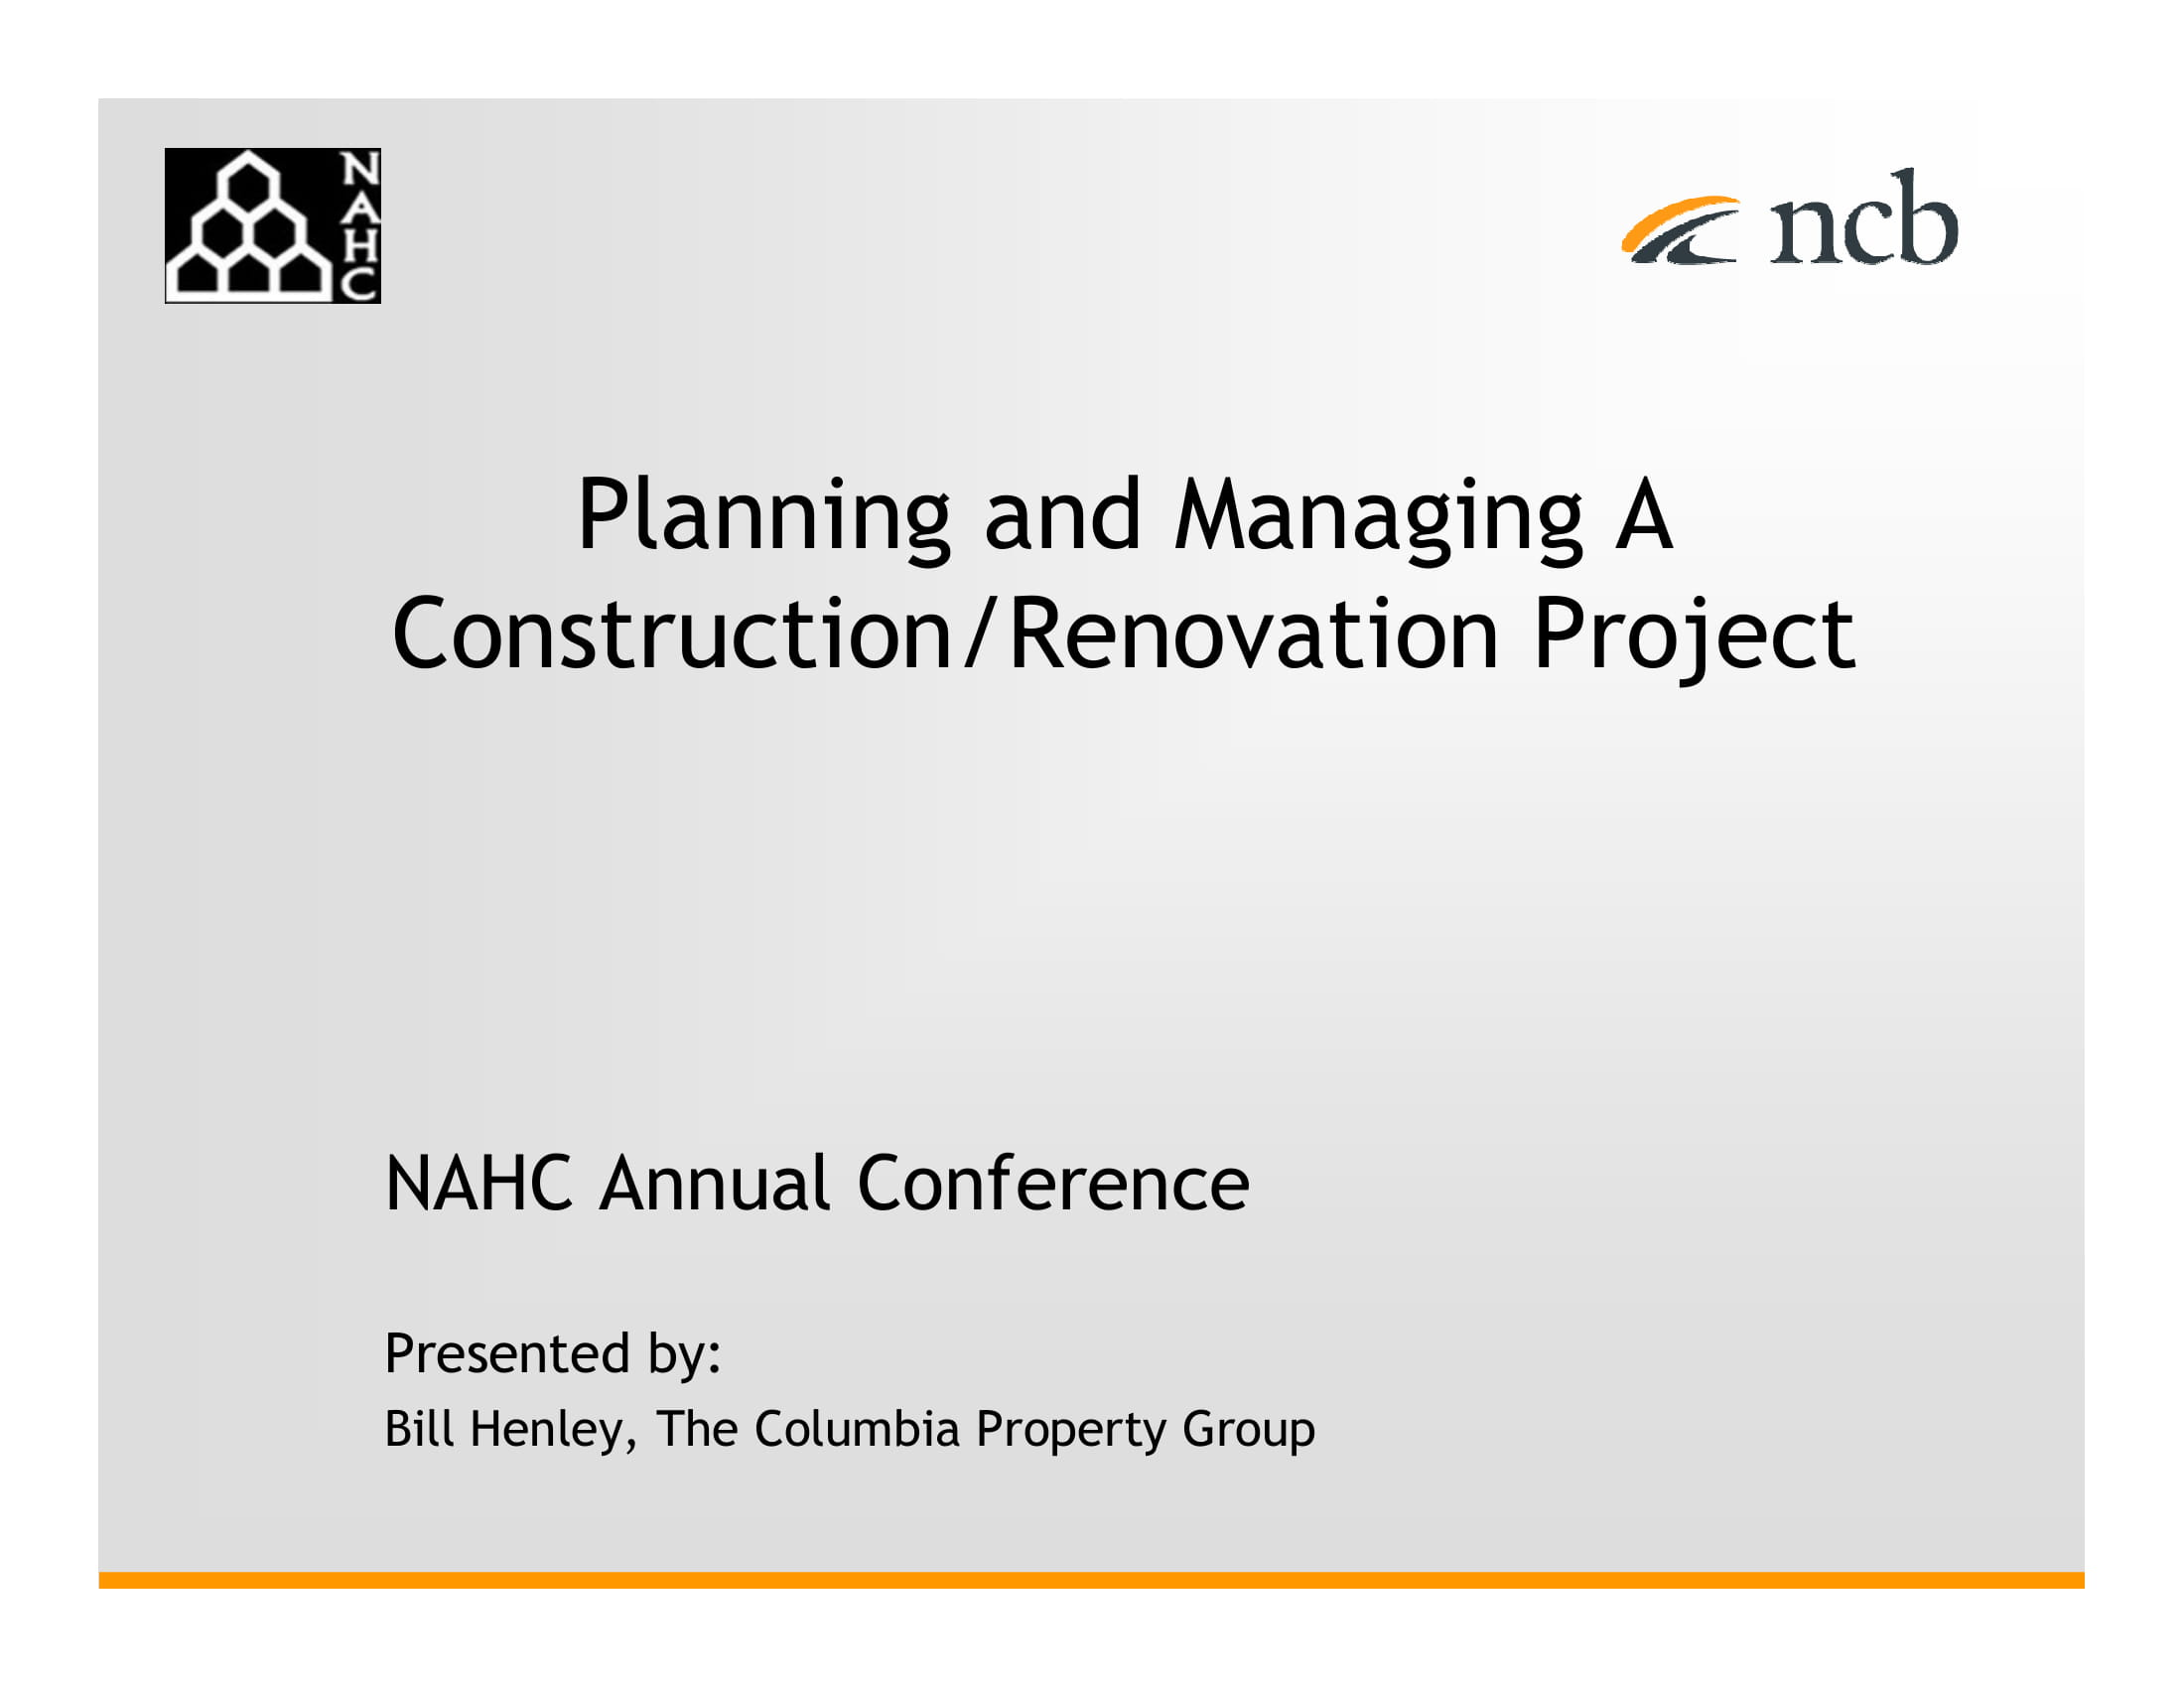 planning and managing construction renovation project